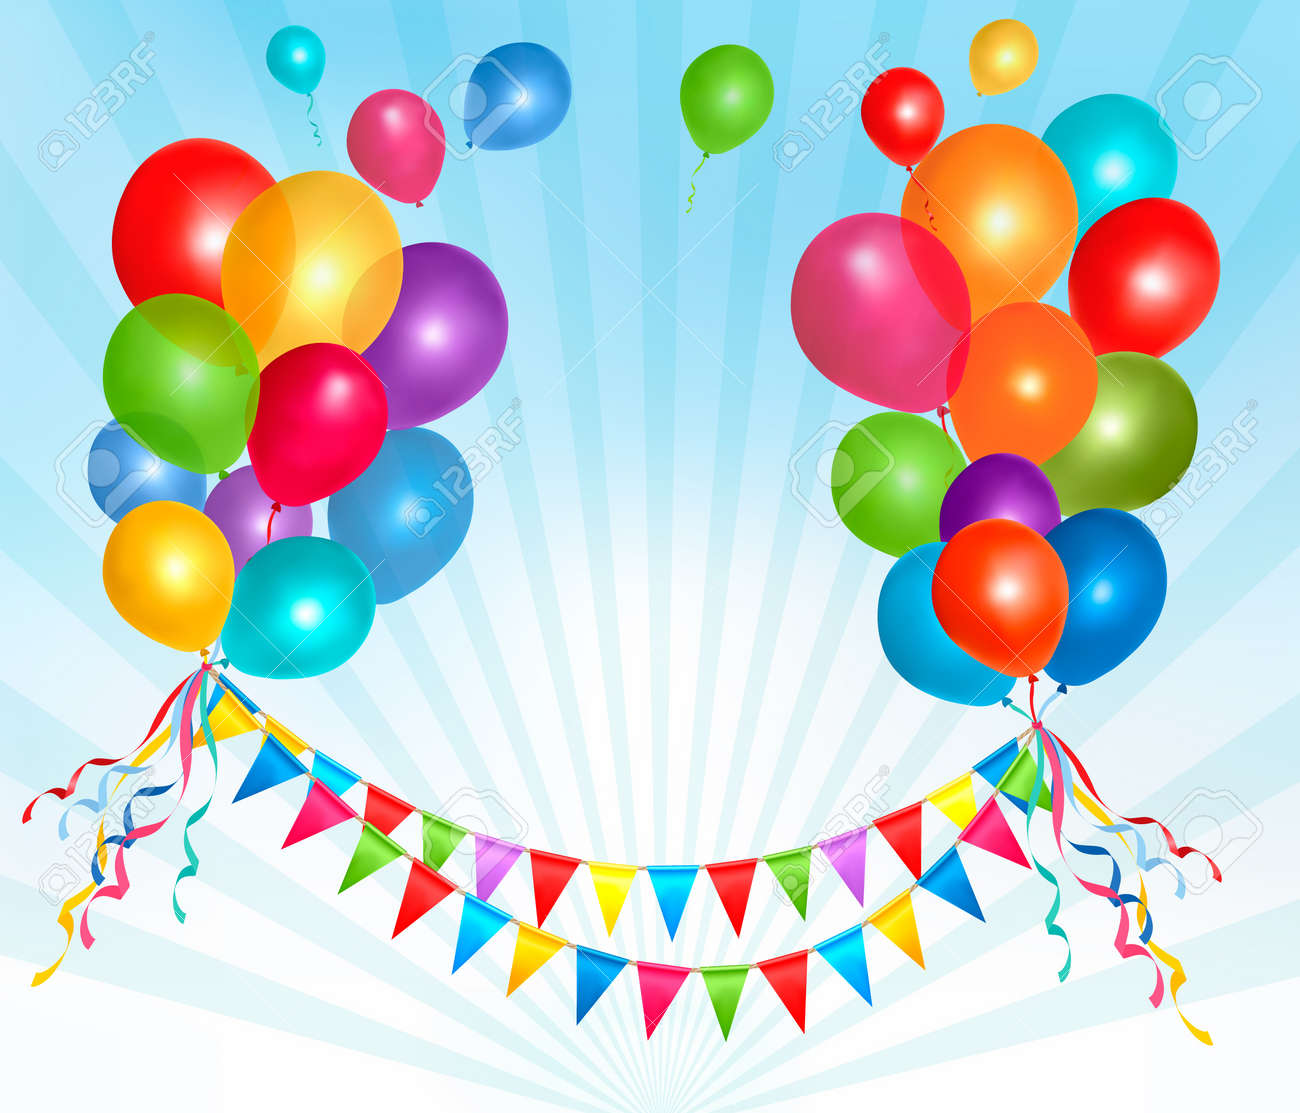 Birthday balloons frame composition with space for your text. Vector illustration. Stock Vector - 13749483